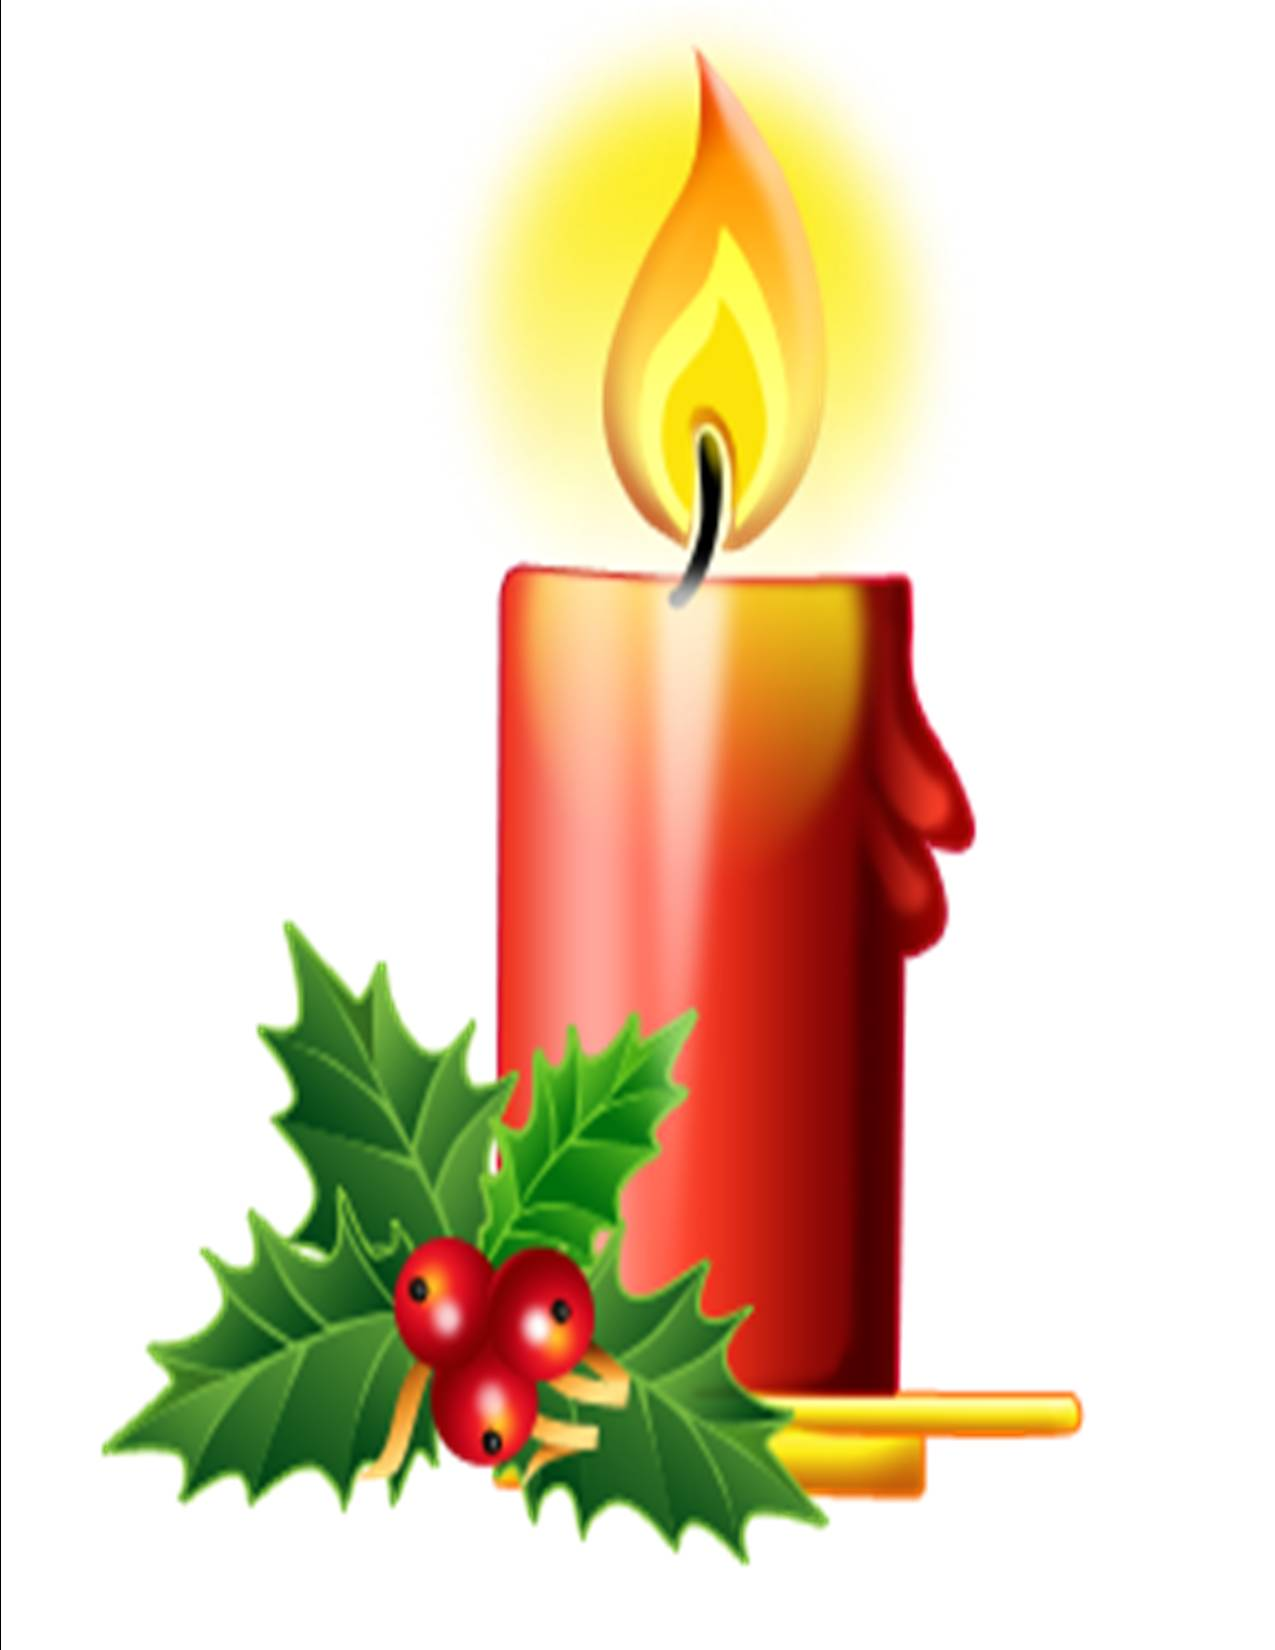 Christmas advent candles clipart.